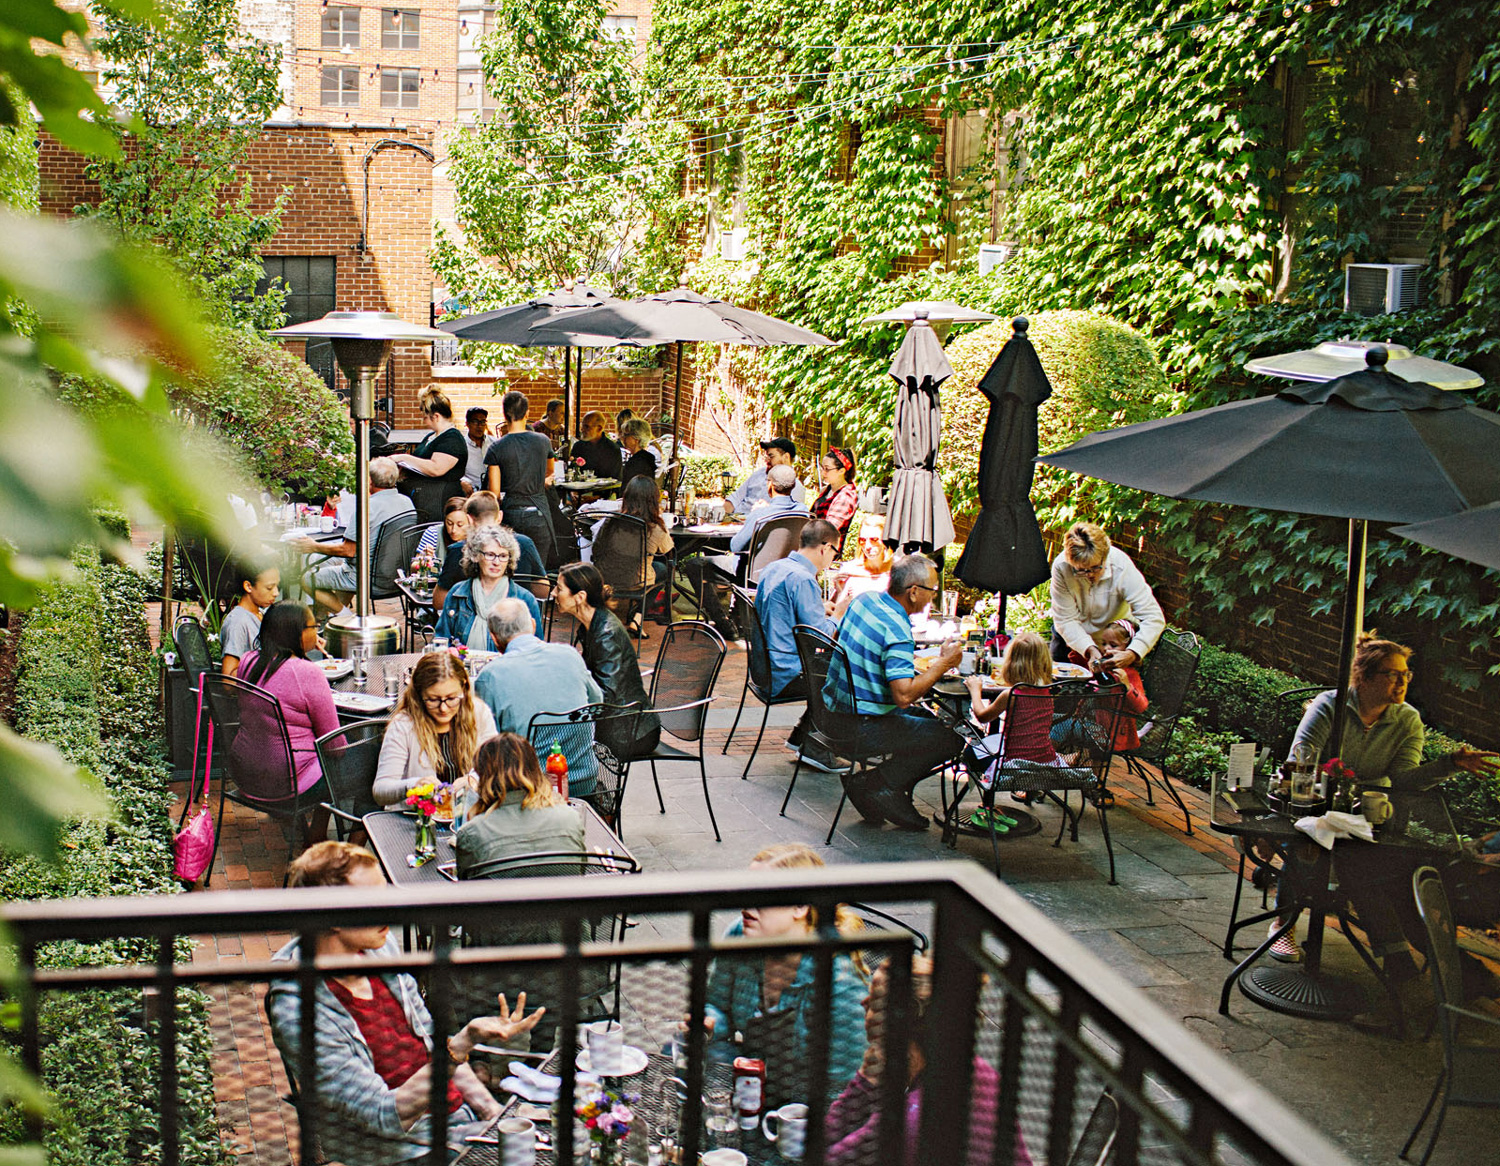 Cafe at the Plaza's garden patio